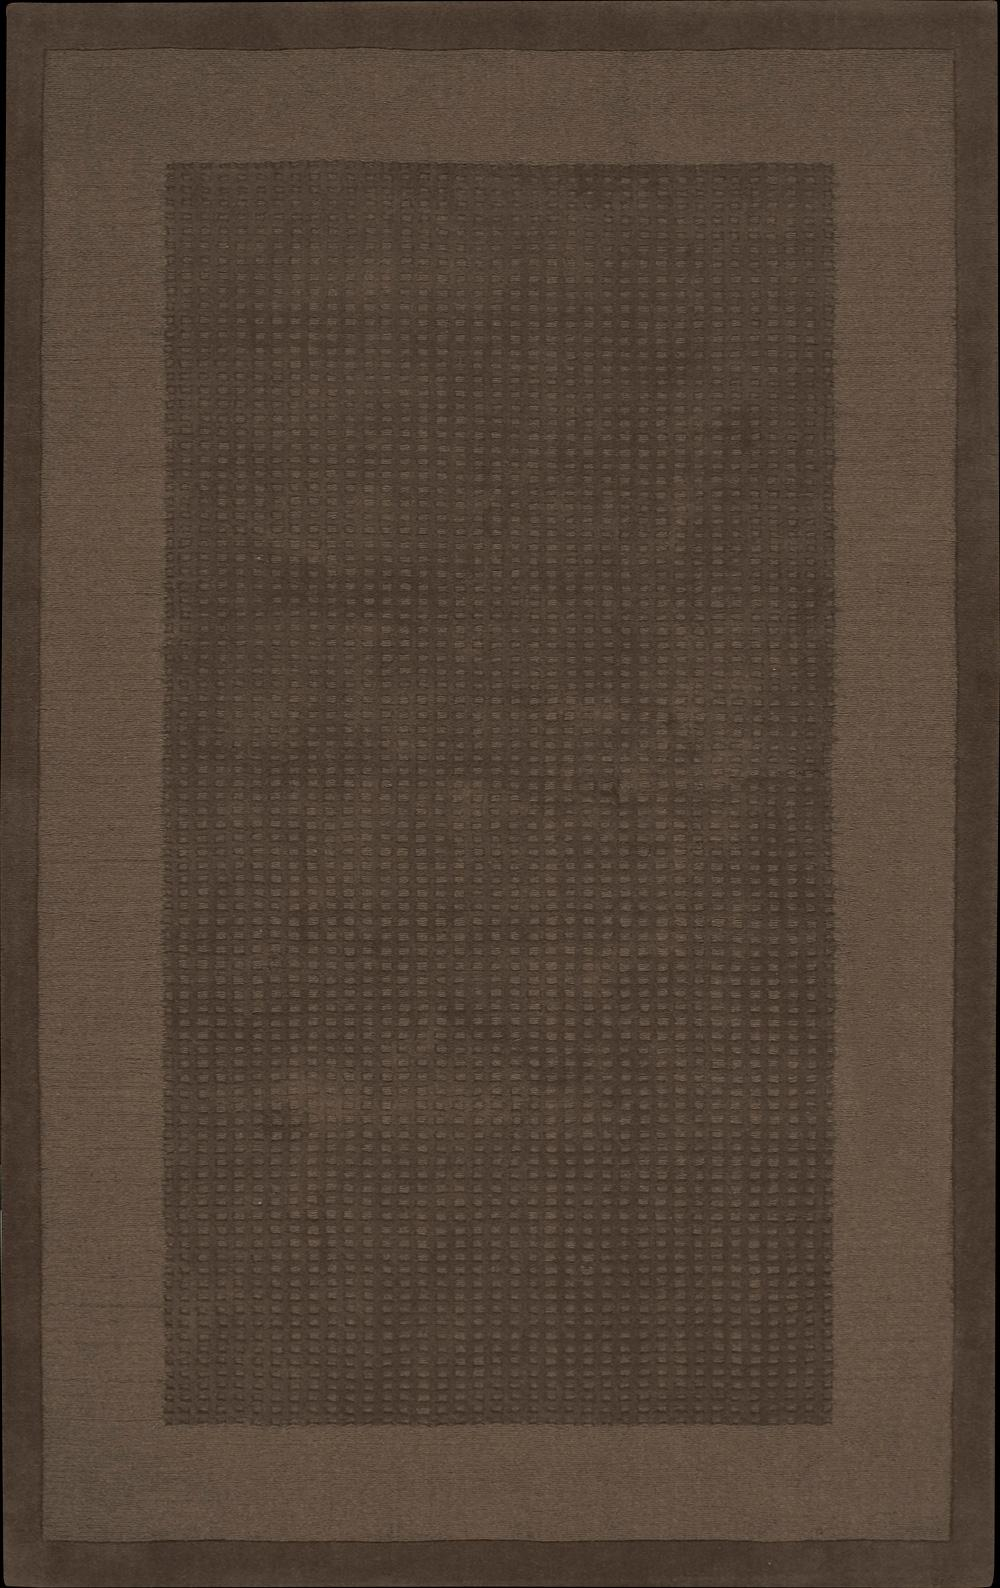 "Nourison Westport Area Rug 2'6"" x 4' - Item Number: 72240"